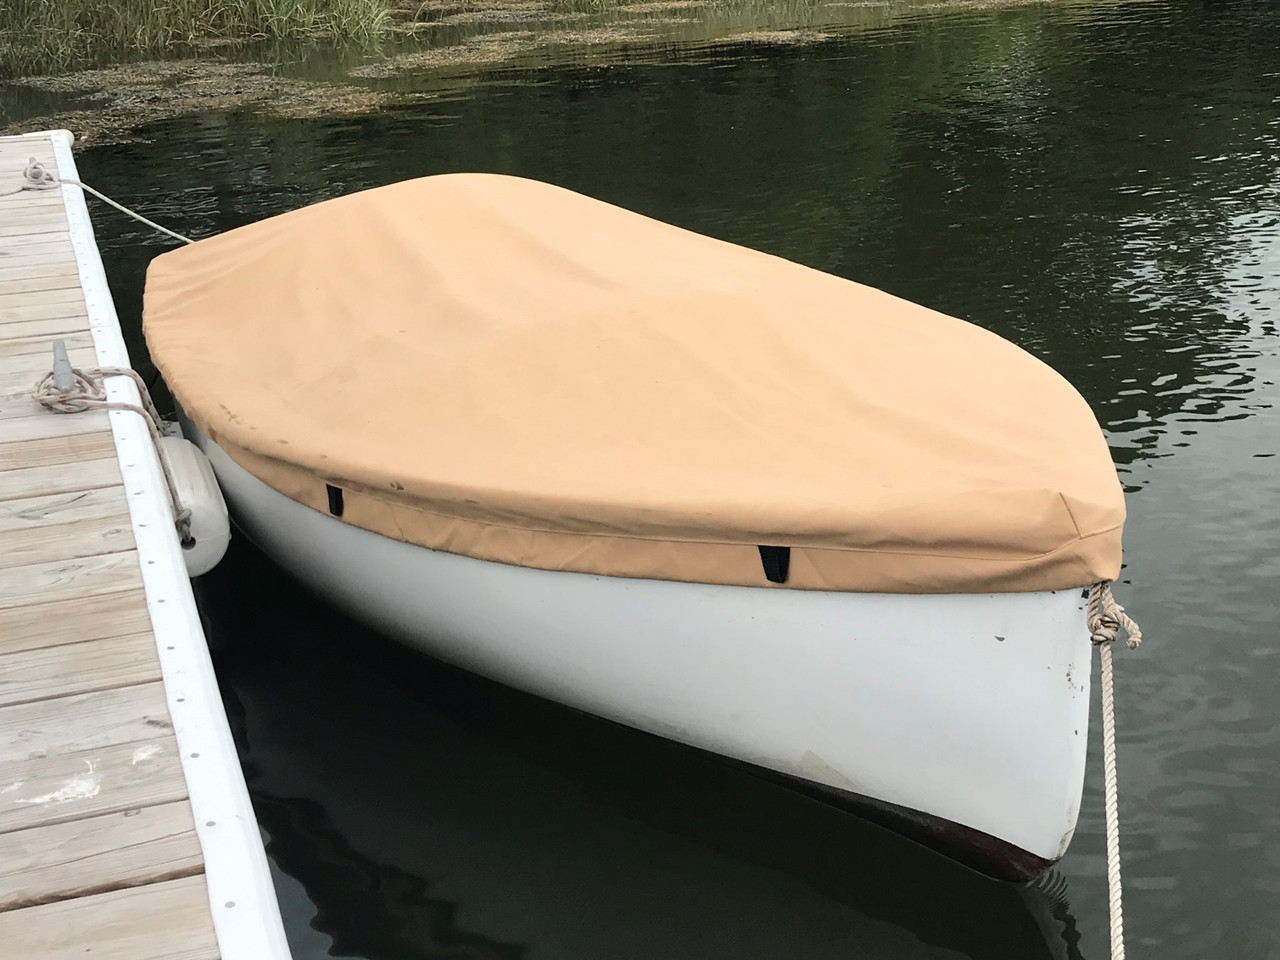 Sailboat Top Cover made in America by skilled artisans at SLO Sail and Canvas.